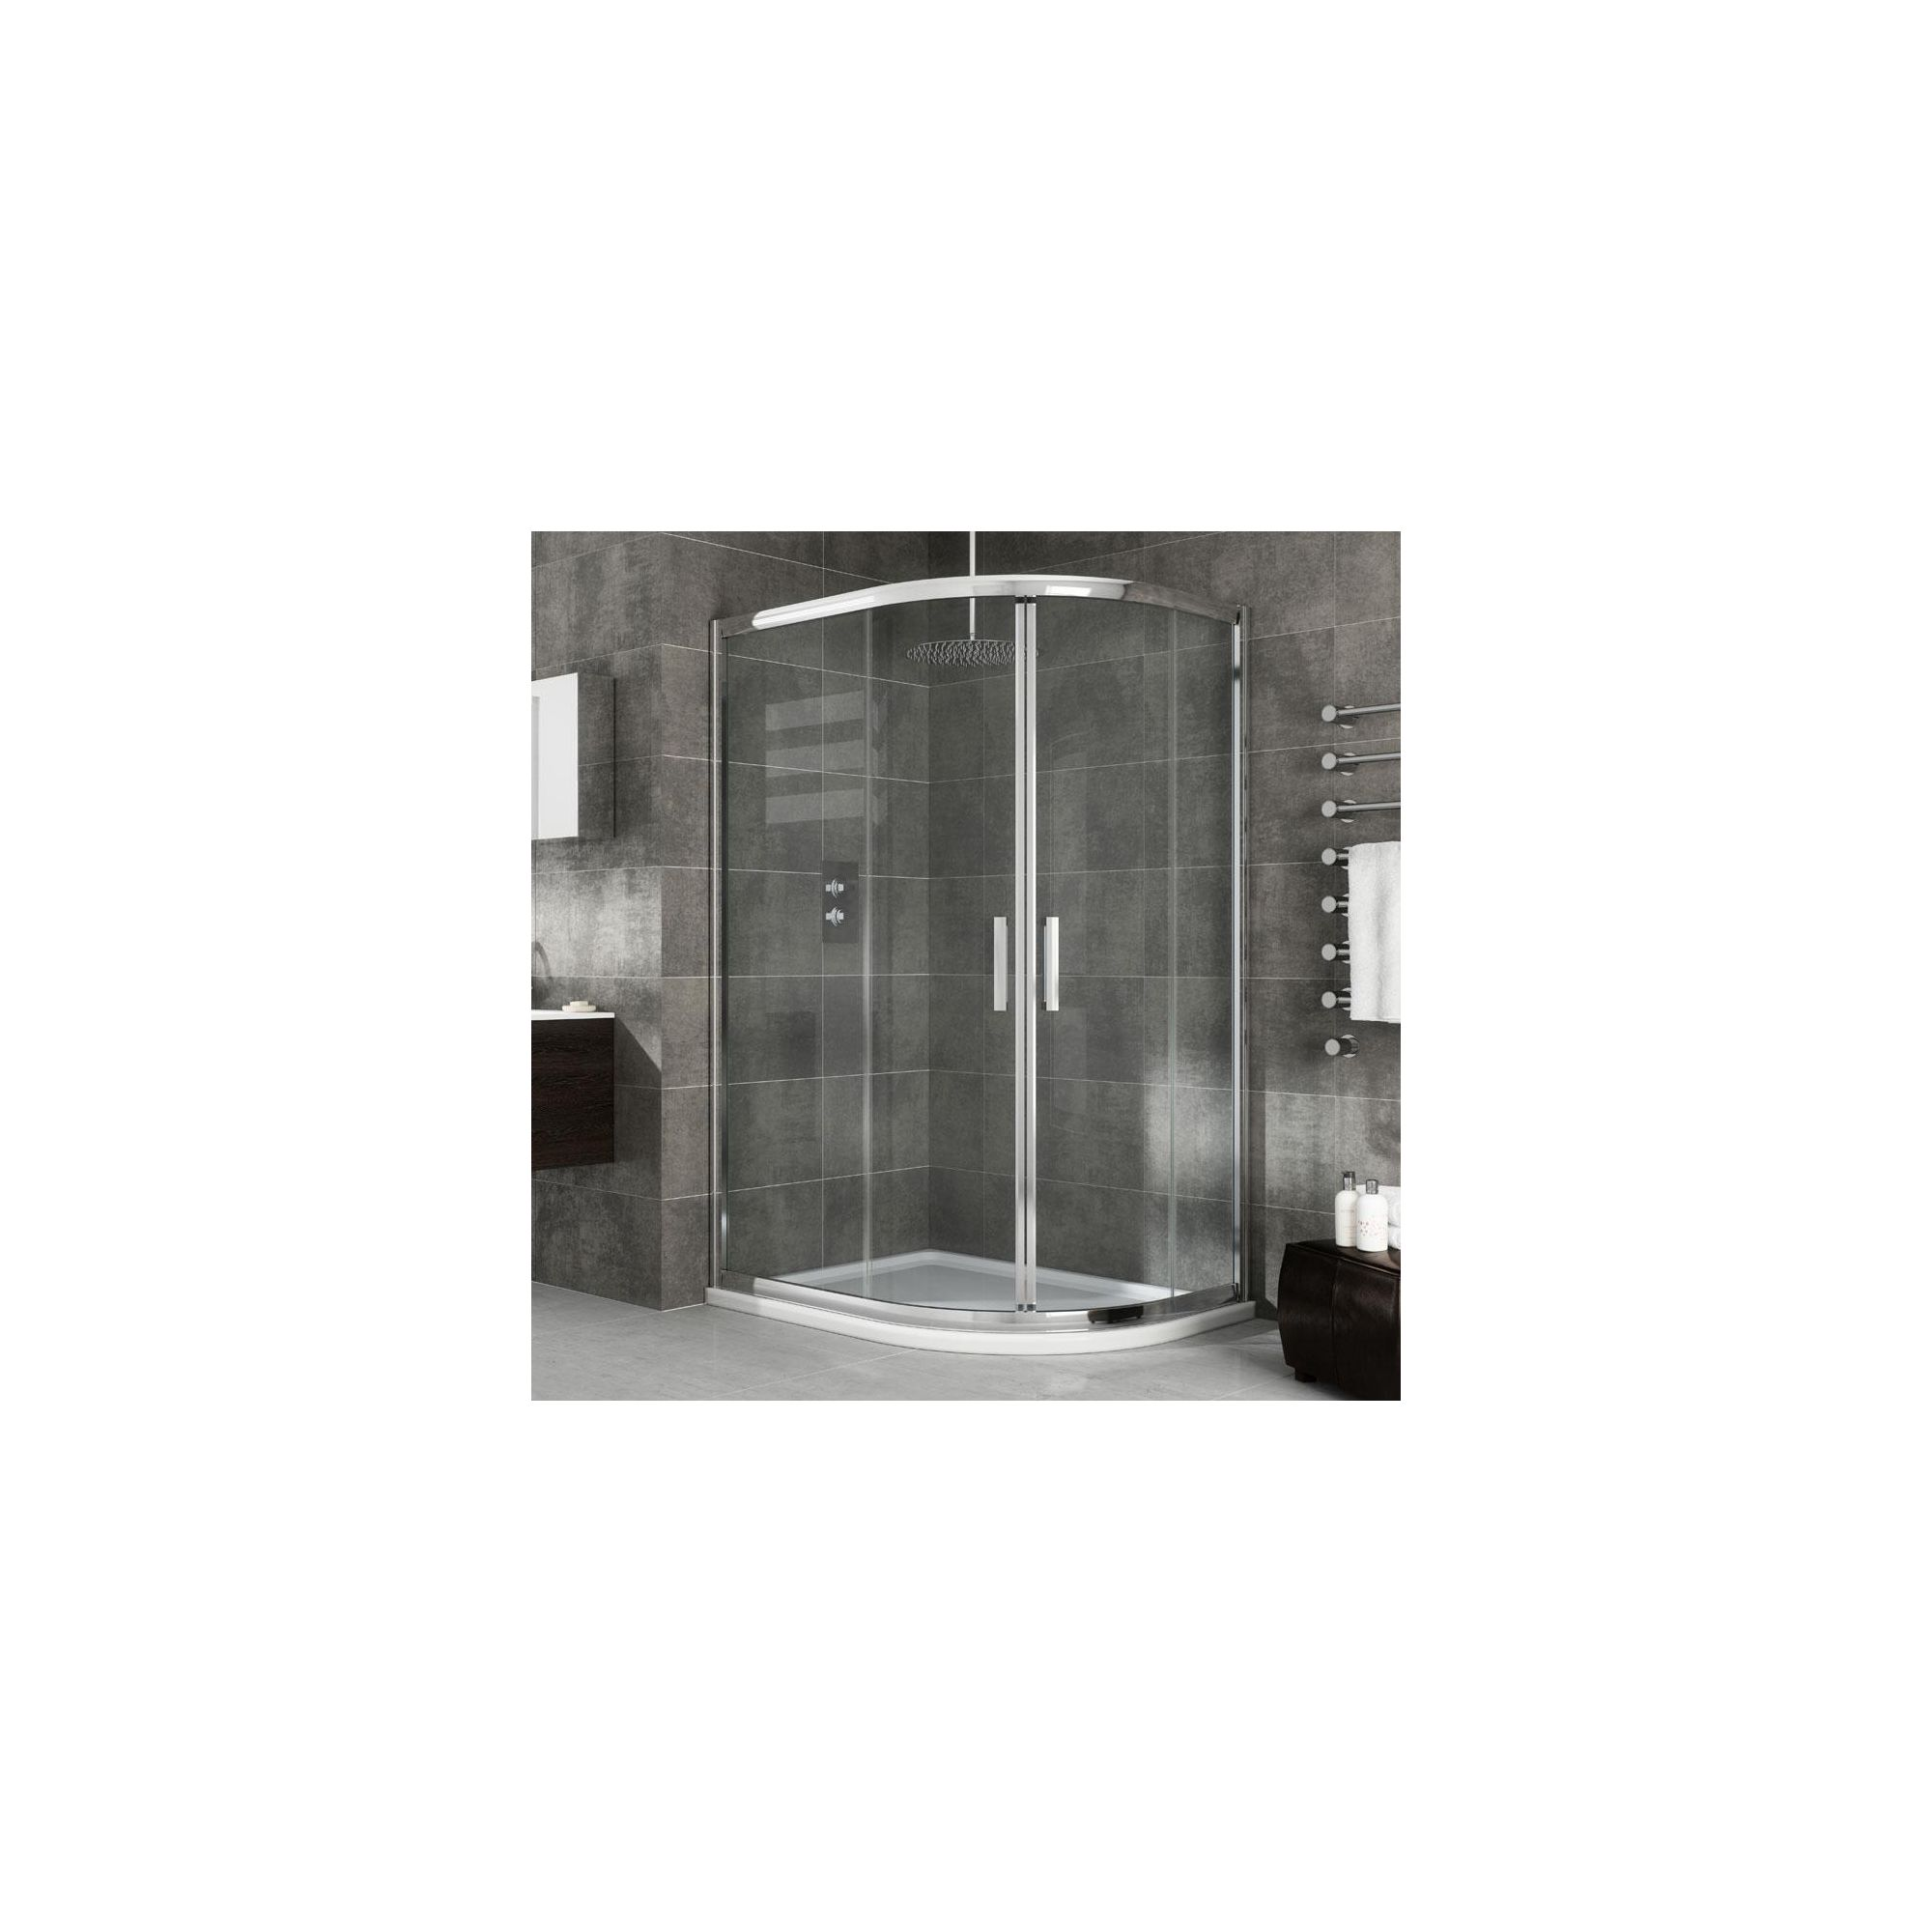 Elemis Eternity Offset Quadrant Shower Enclosure, 1200mm x 800mm, 8mm Glass, Low Profile Tray, Left Handed at Tesco Direct